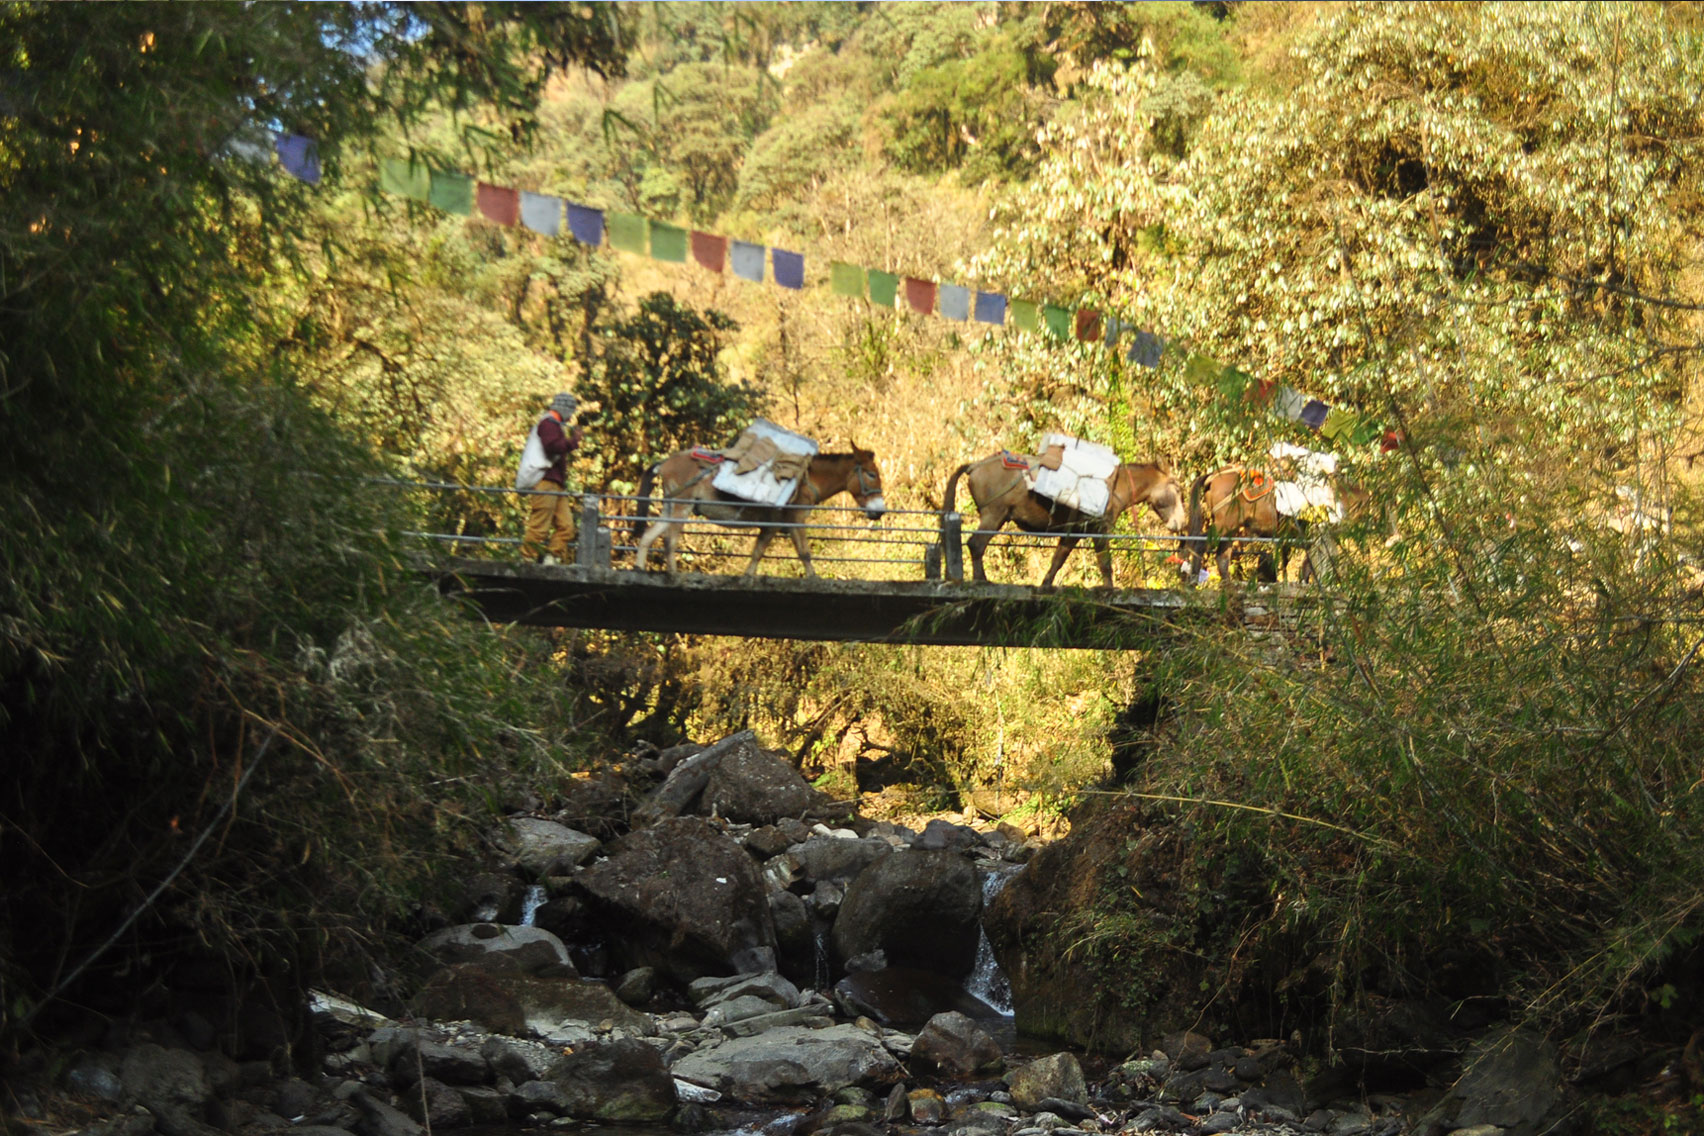 Day 3: Drive from Pokhara to Nayapul (1.5 hrs, 1070m) and trek to Ulleri (5hrs, 1500m)